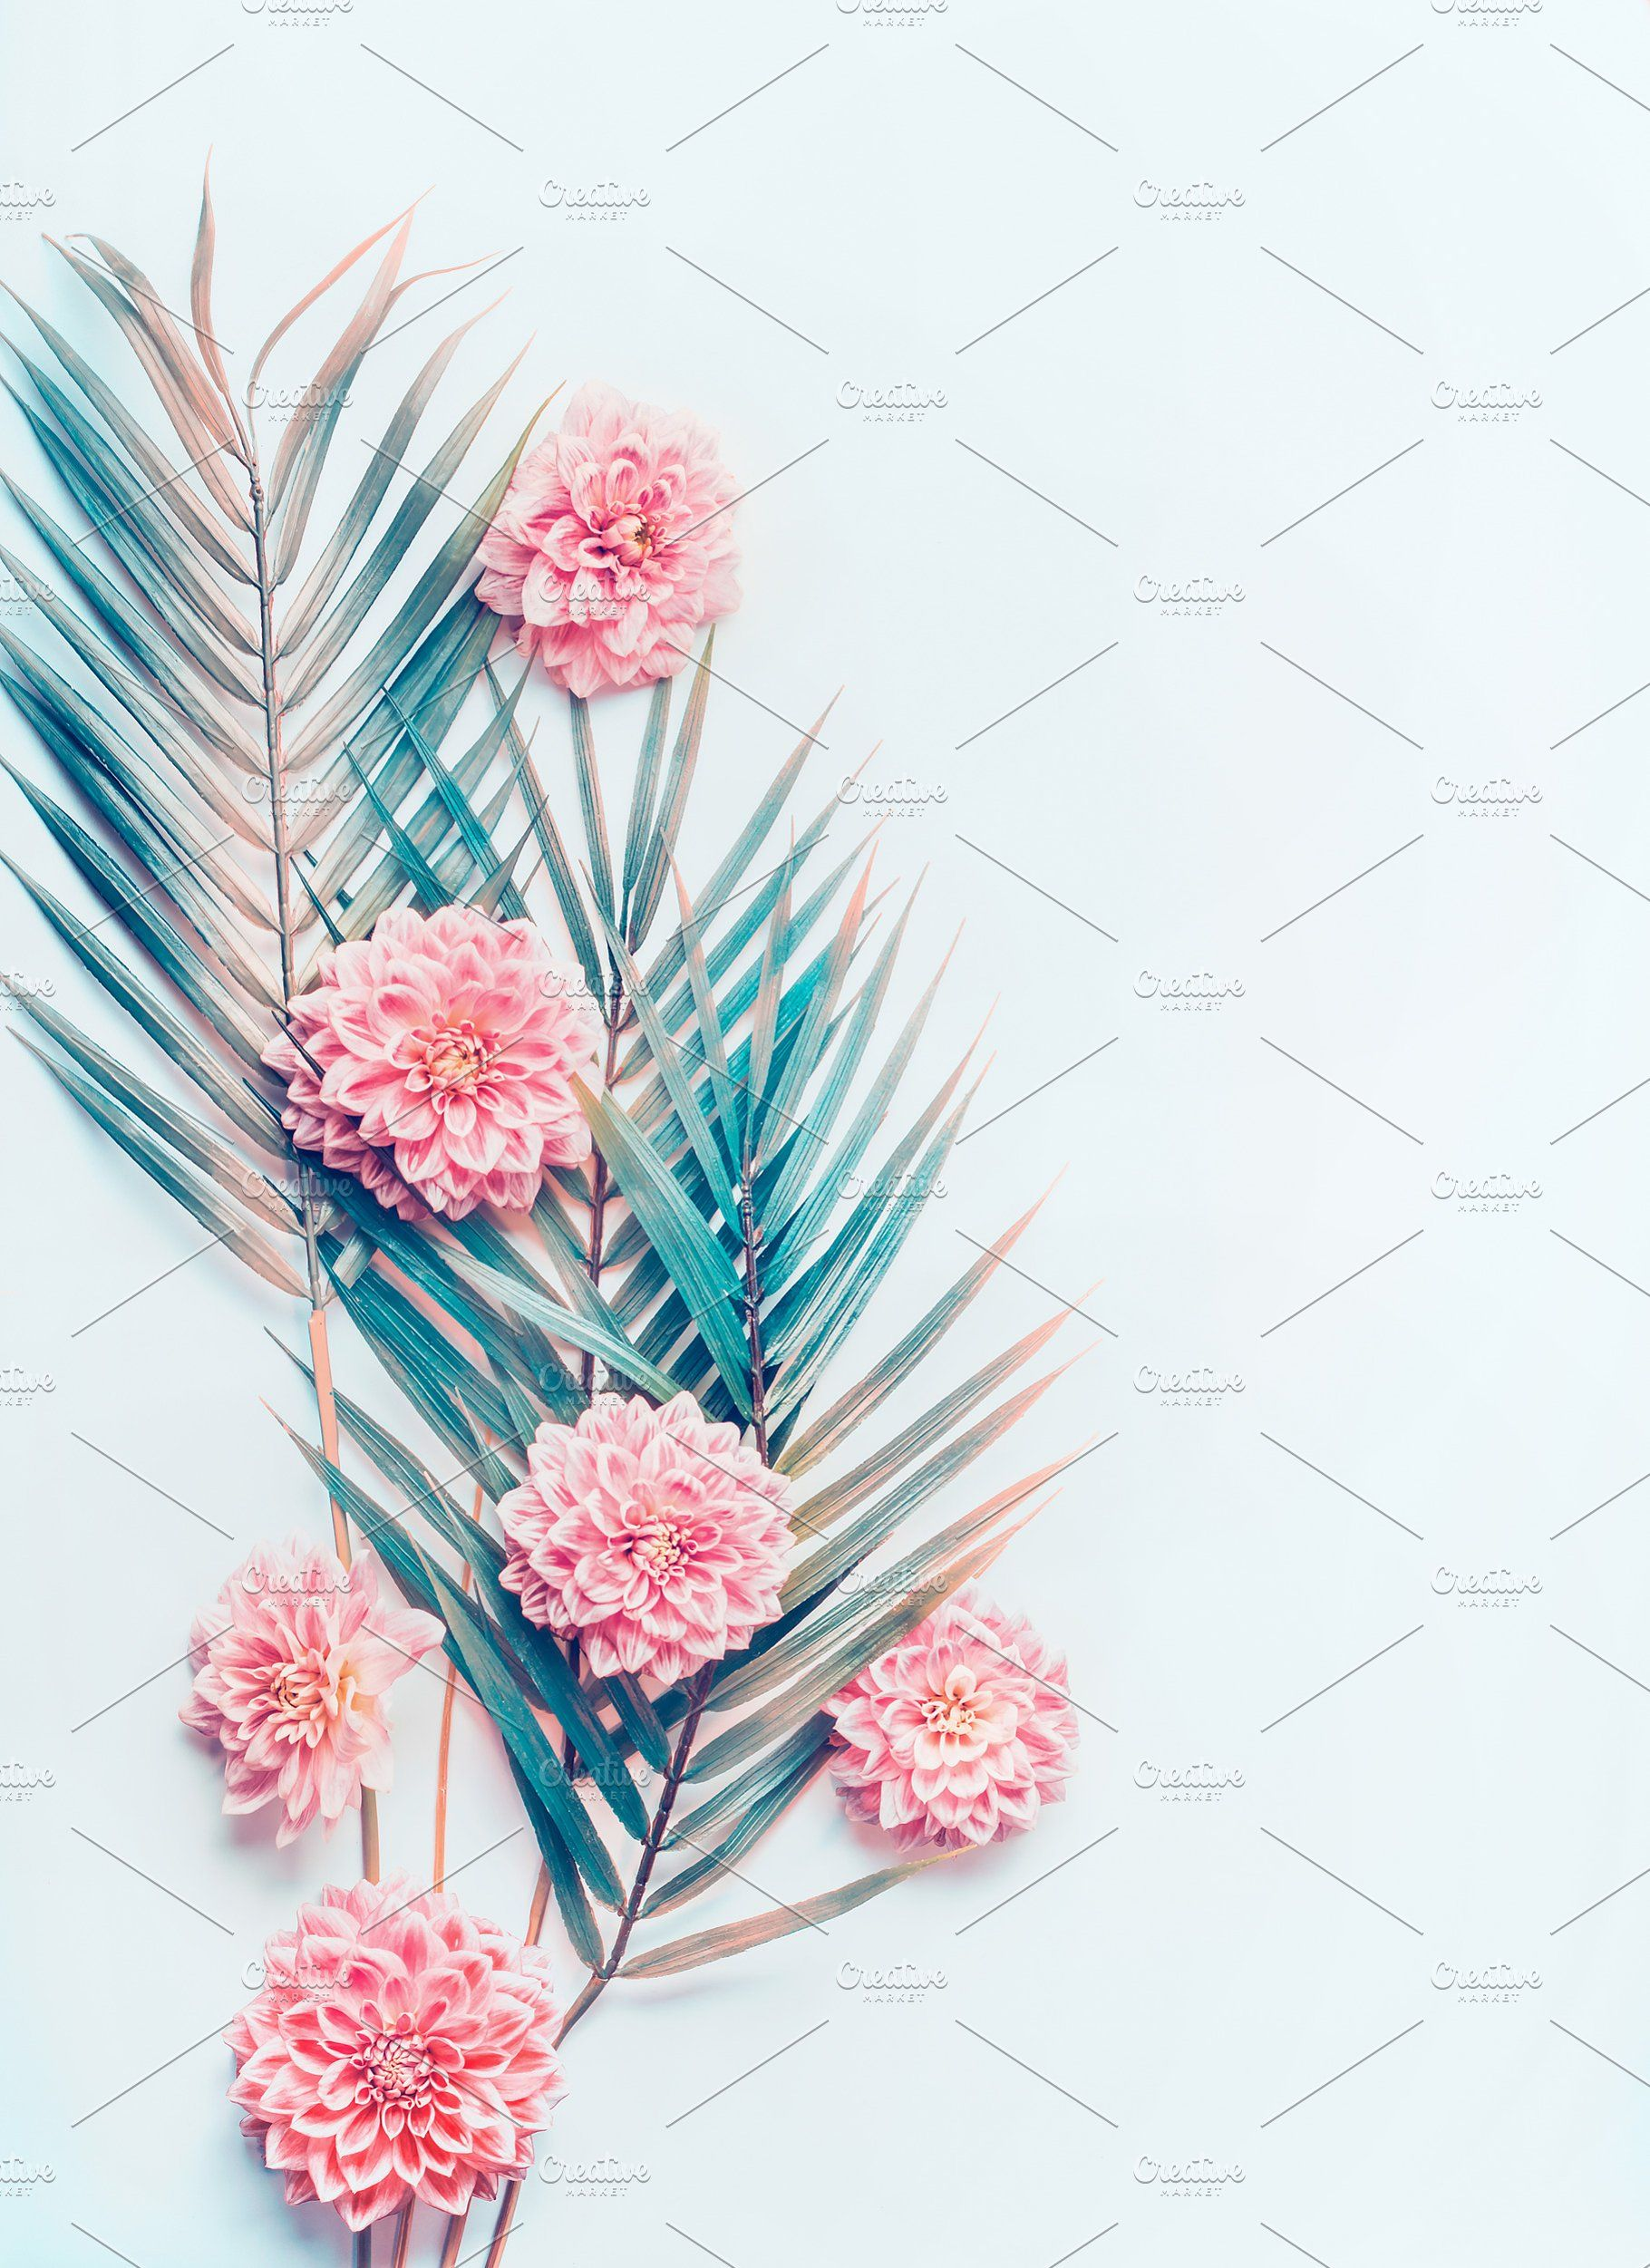 Tropical Leaves And Pink Flowers Pink And Turquoise Wallpaper Flower Wallpaper Flower Aesthetic